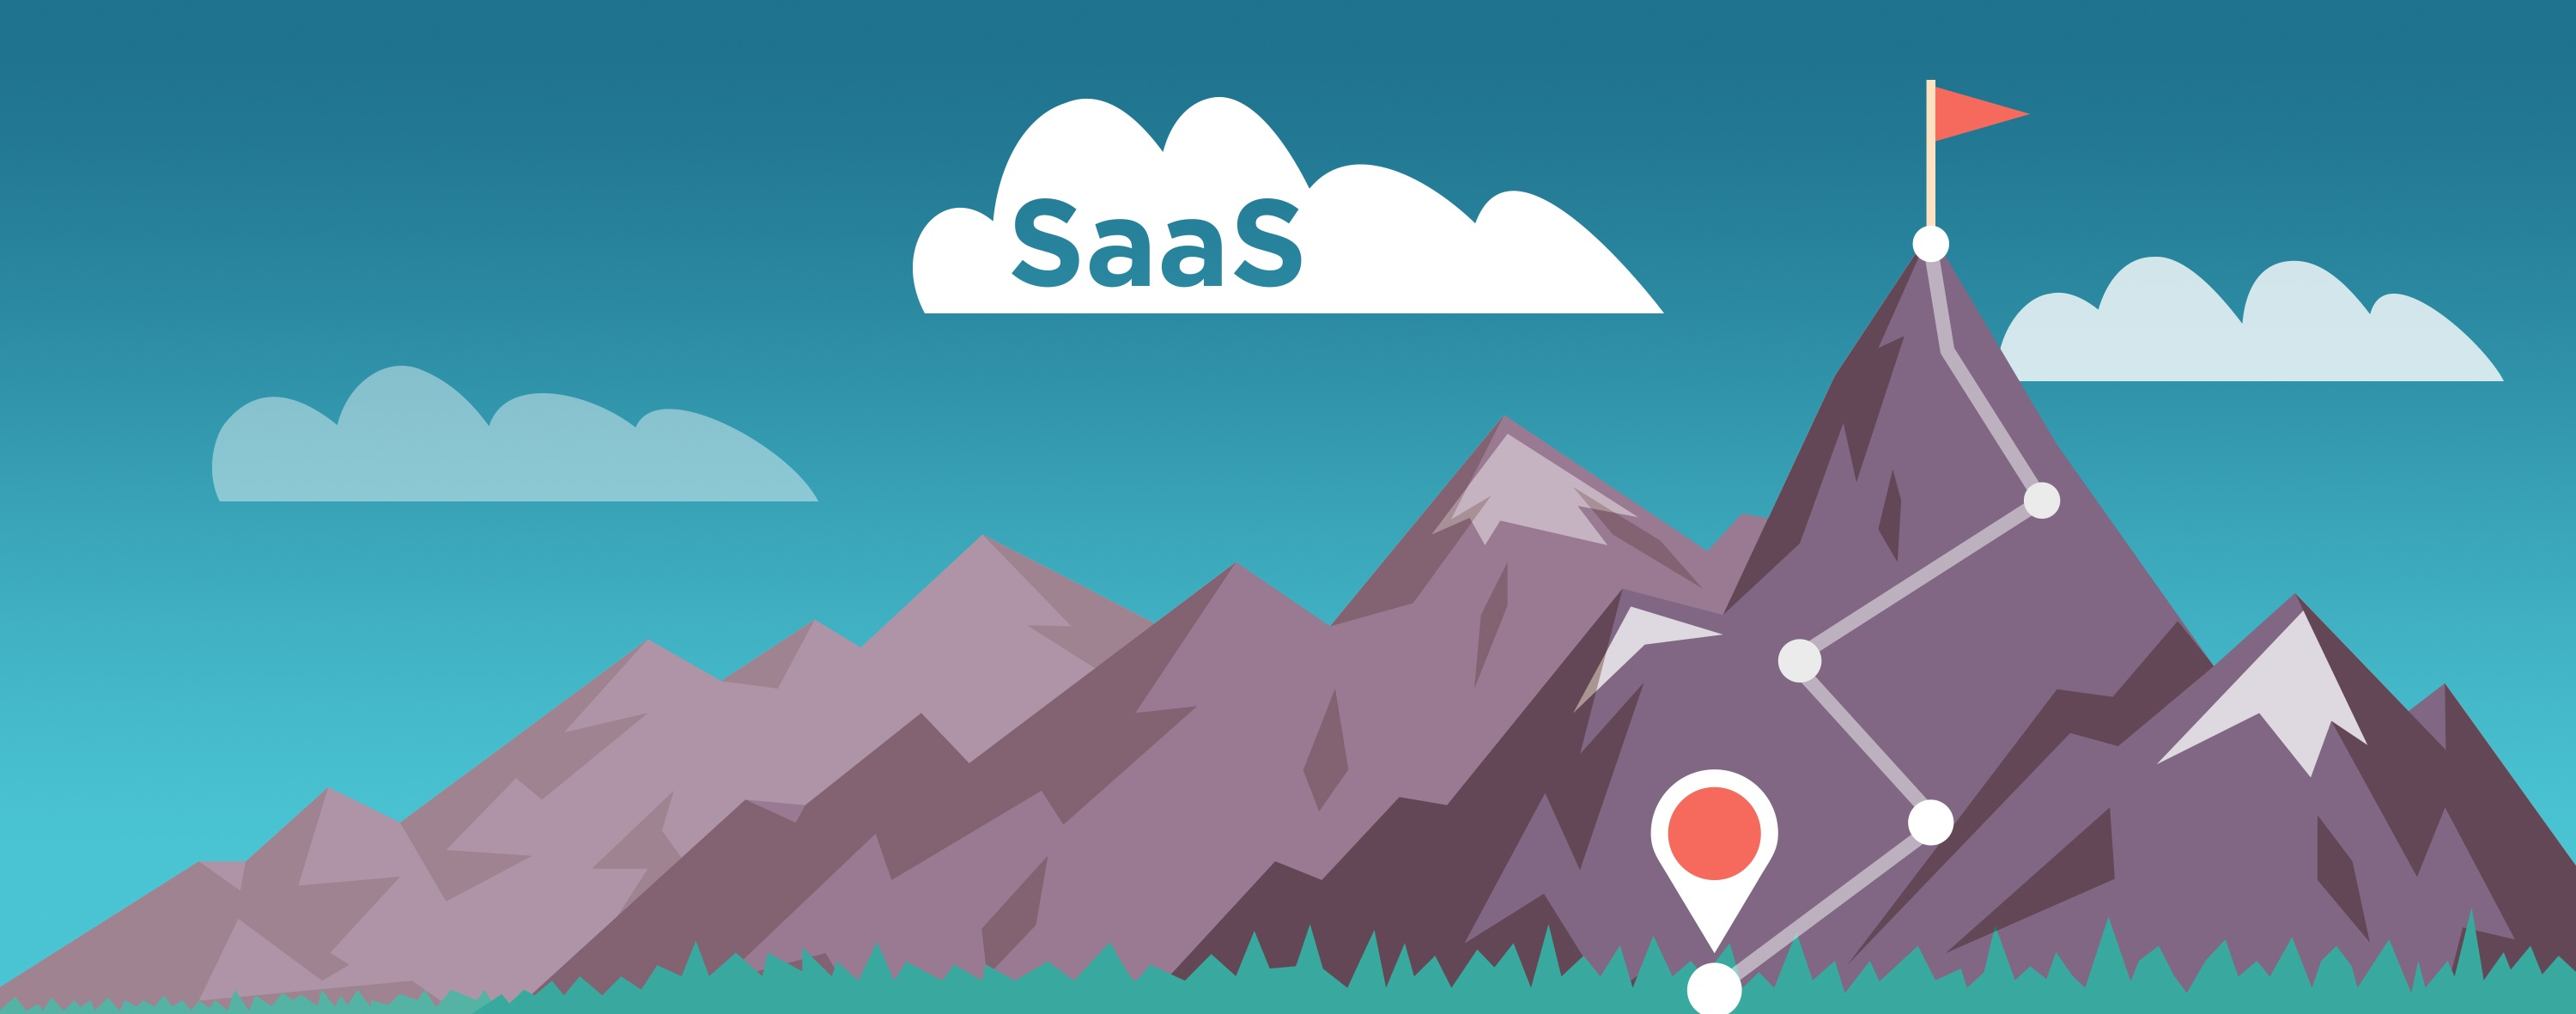 conquering the saas mountain software as a service content